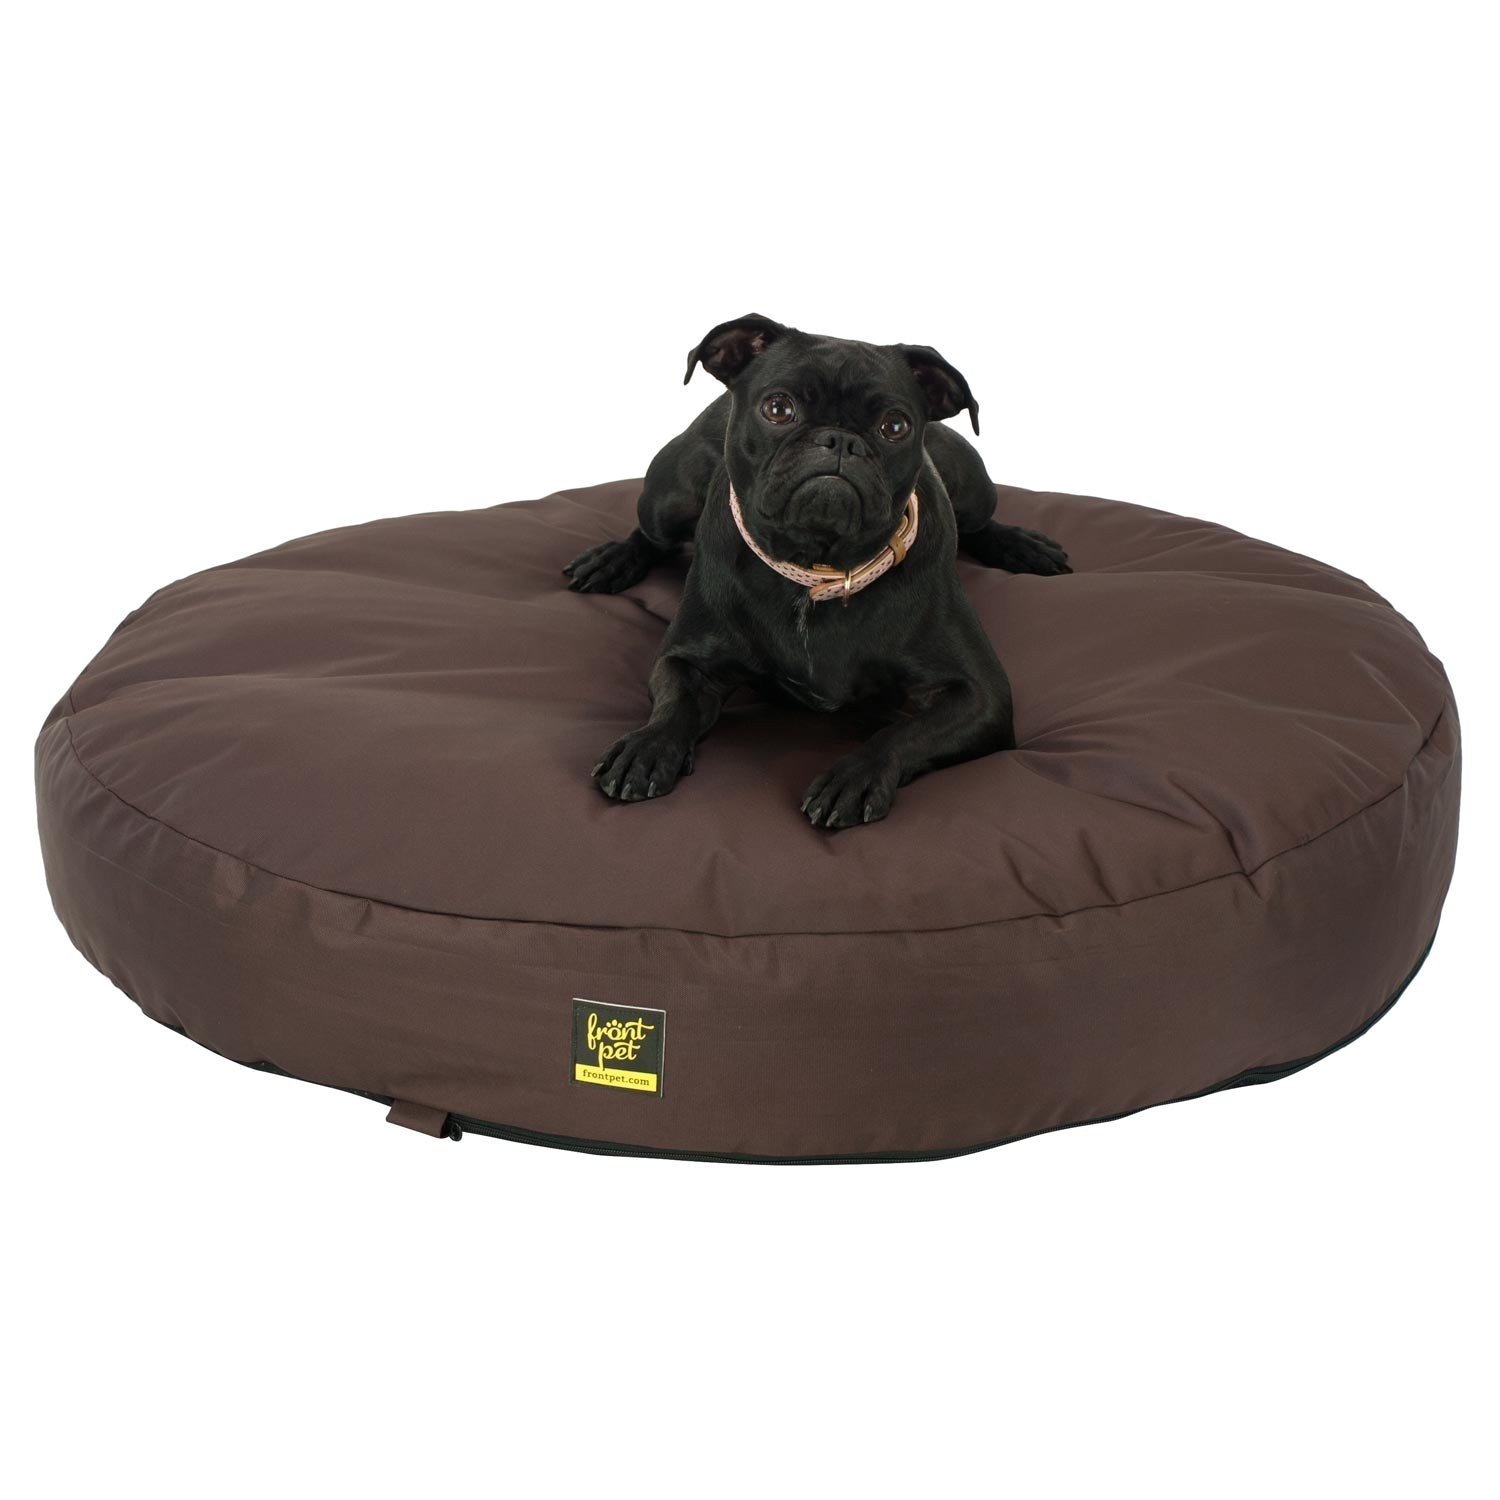 amazoncom frontpet chew resistant dog bed quot round chew 9cfbe37d3b54fe48